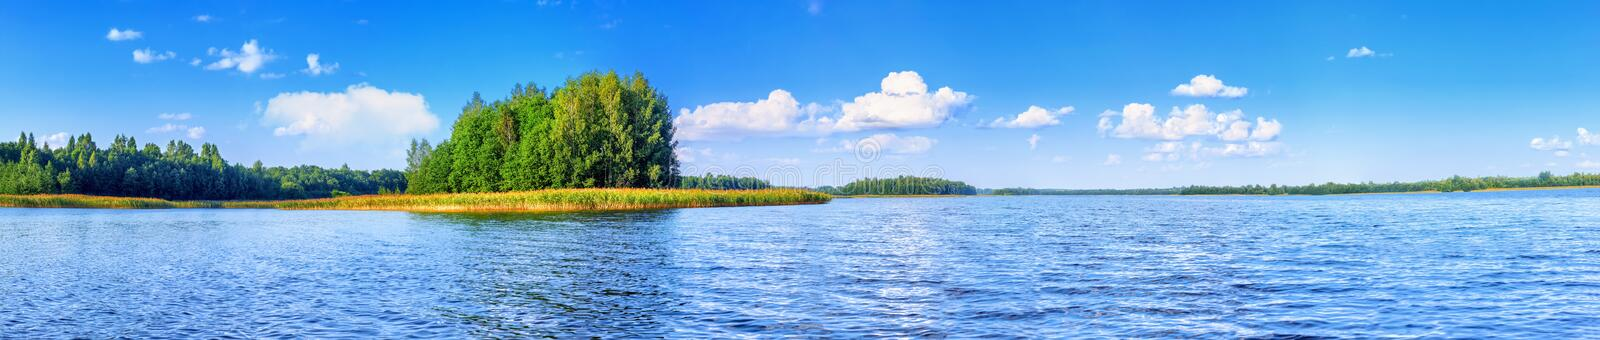 Landscape of beautiful lake at summer day stock image